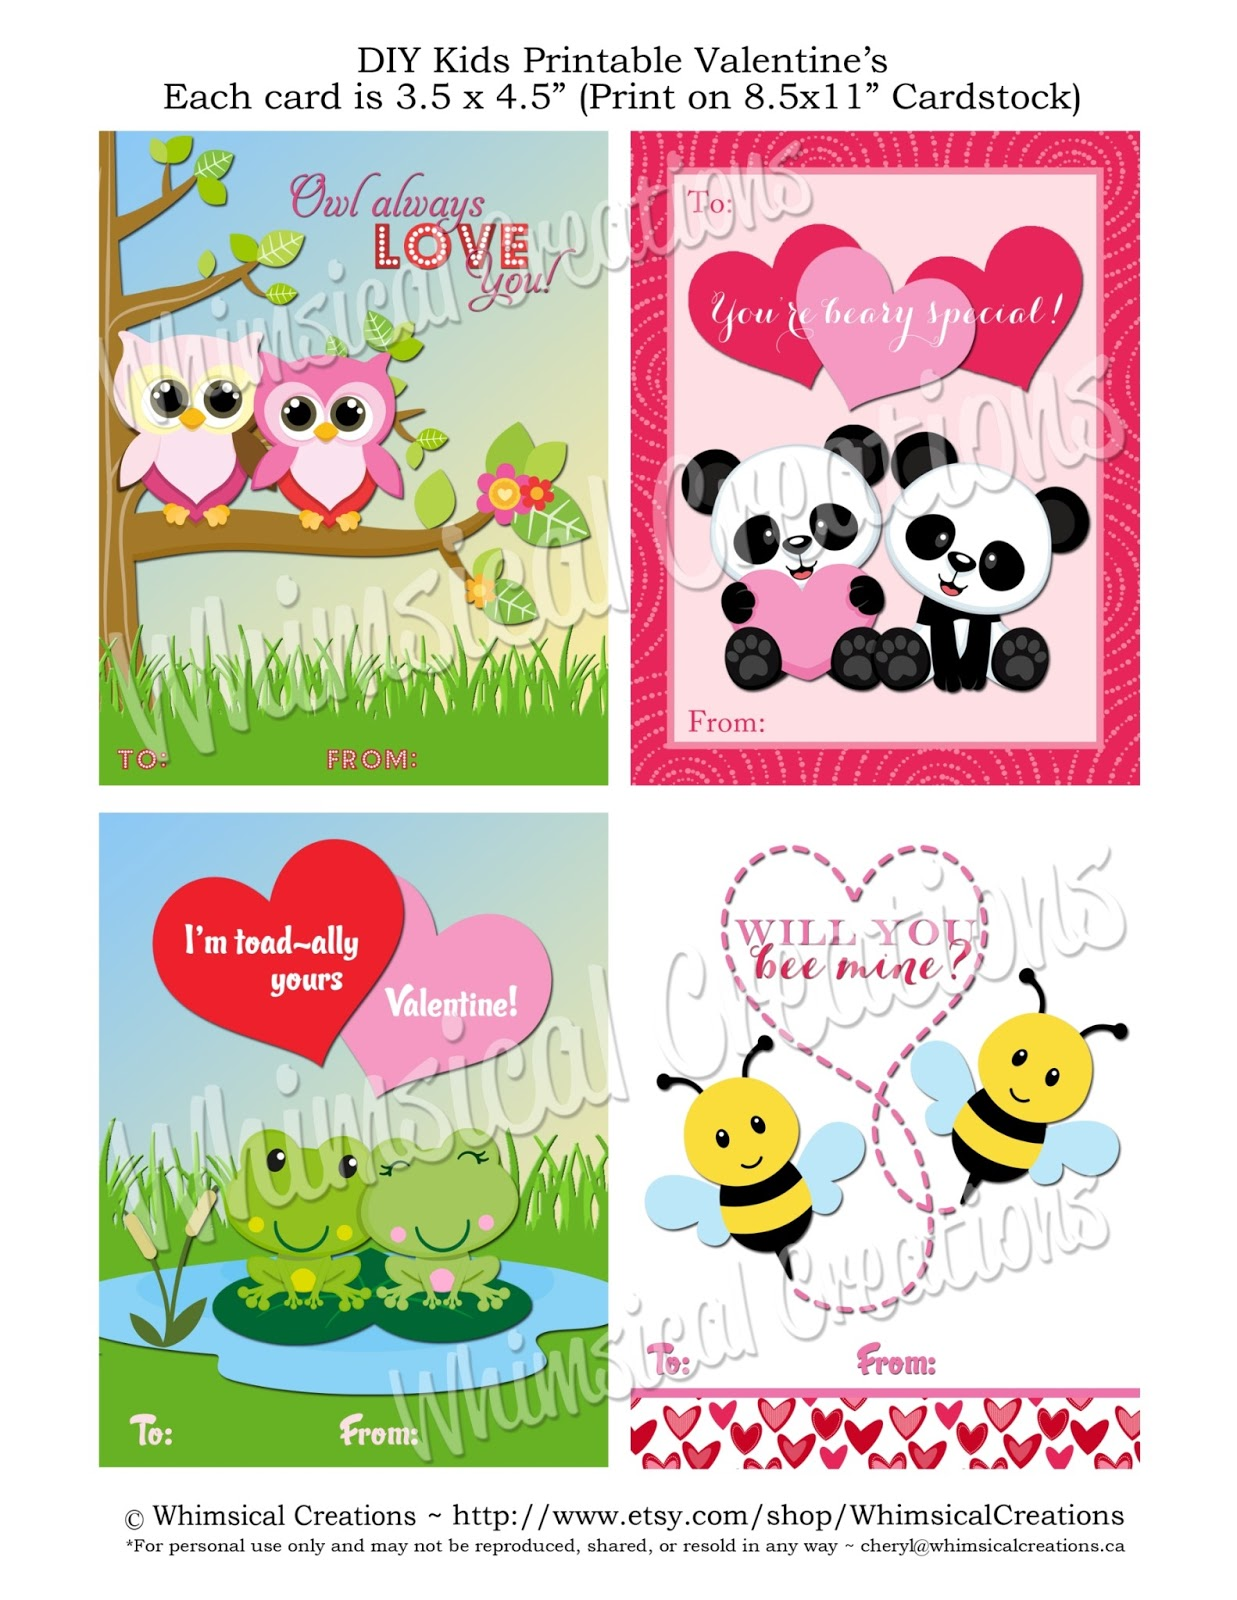 This is a picture of Old Fashioned Printable Kid Valentine Cards